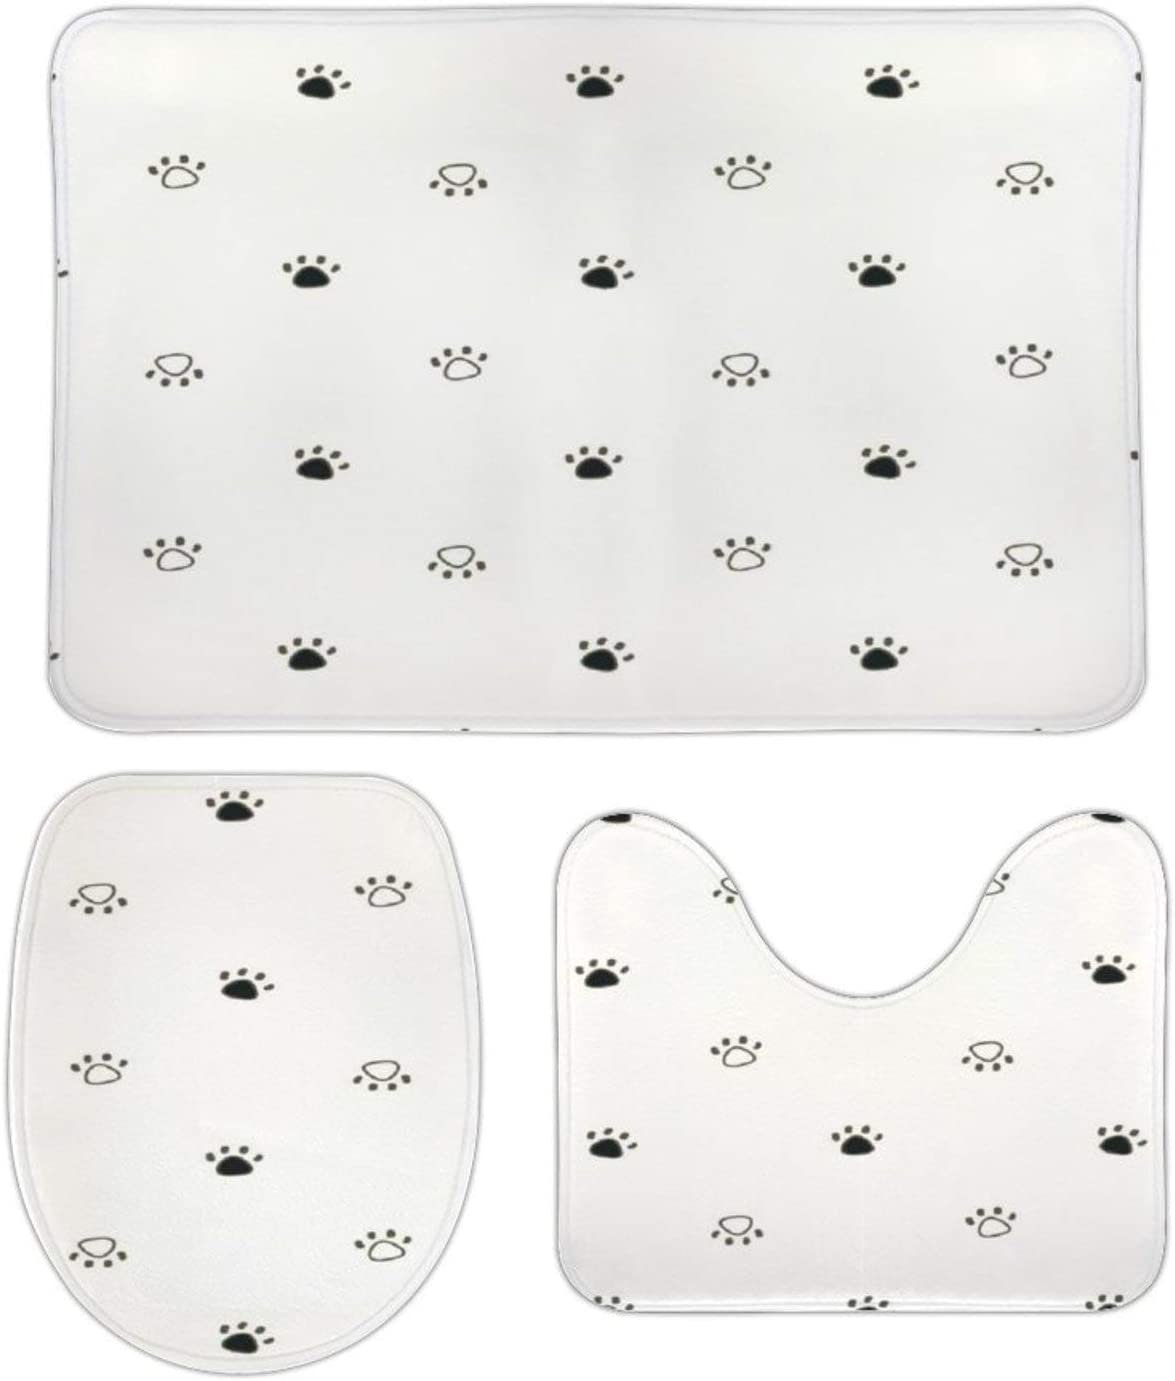 NEWpapa Cool Print Soft Challenge the lowest price New color Comfort Non-Slip Flannel Mats Bathroom A